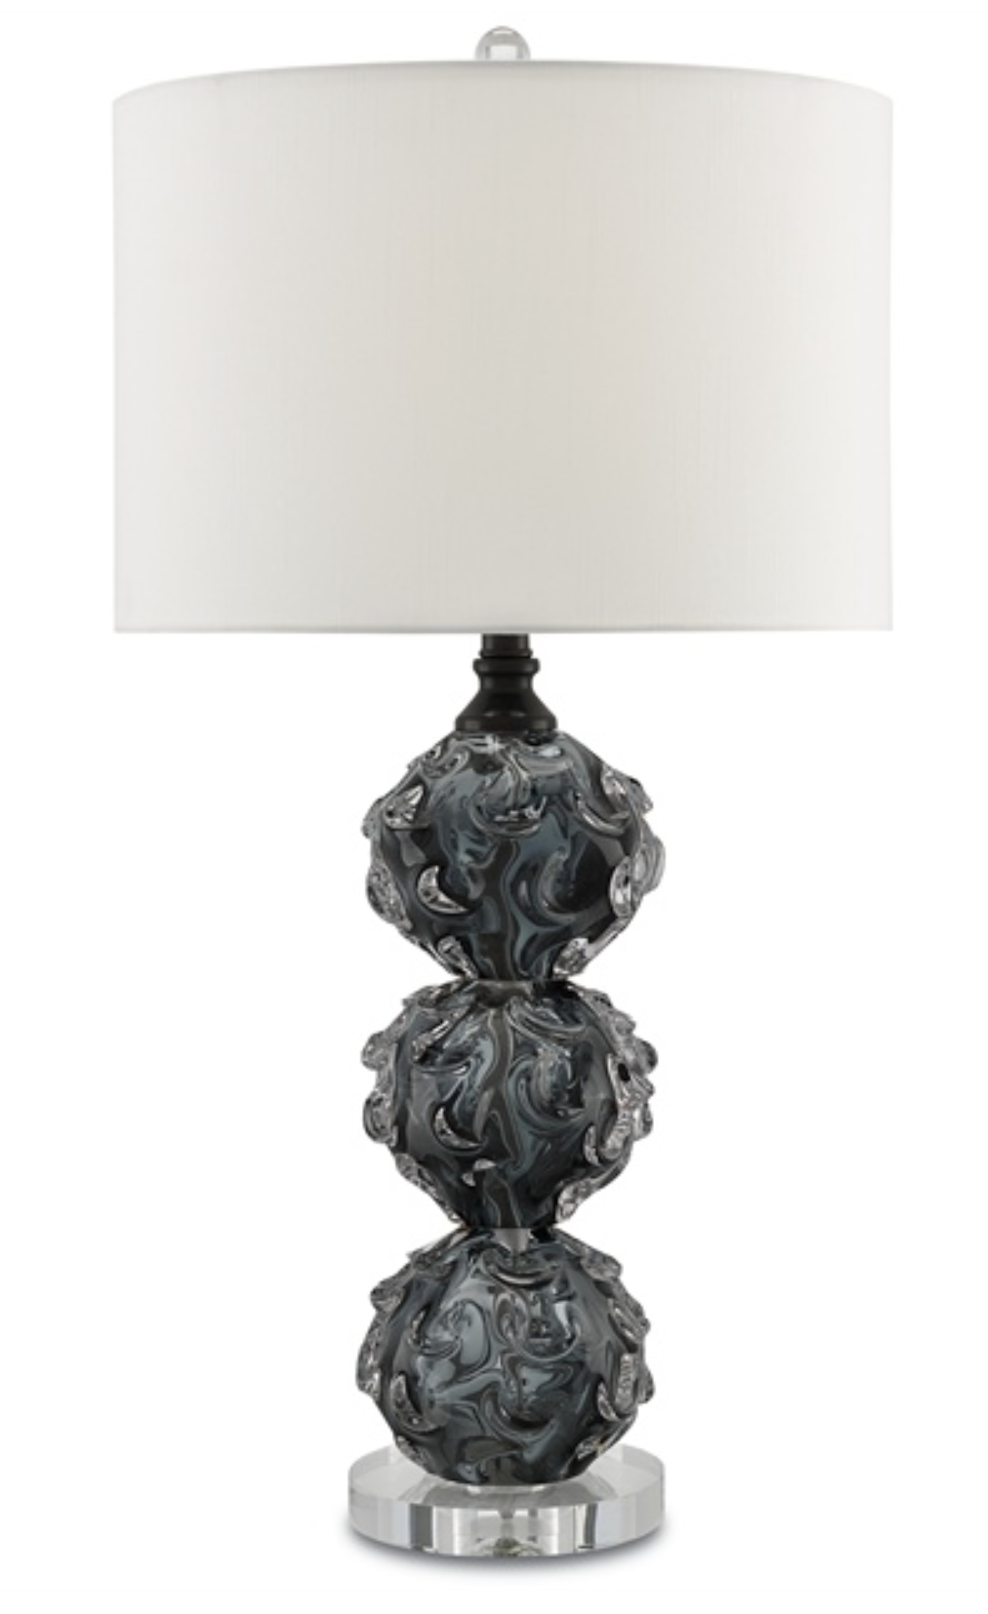 Smoked Grey Glass Spheres/Crystal Table Lamp w/Linen Shade  15.5dx30h  CC60024